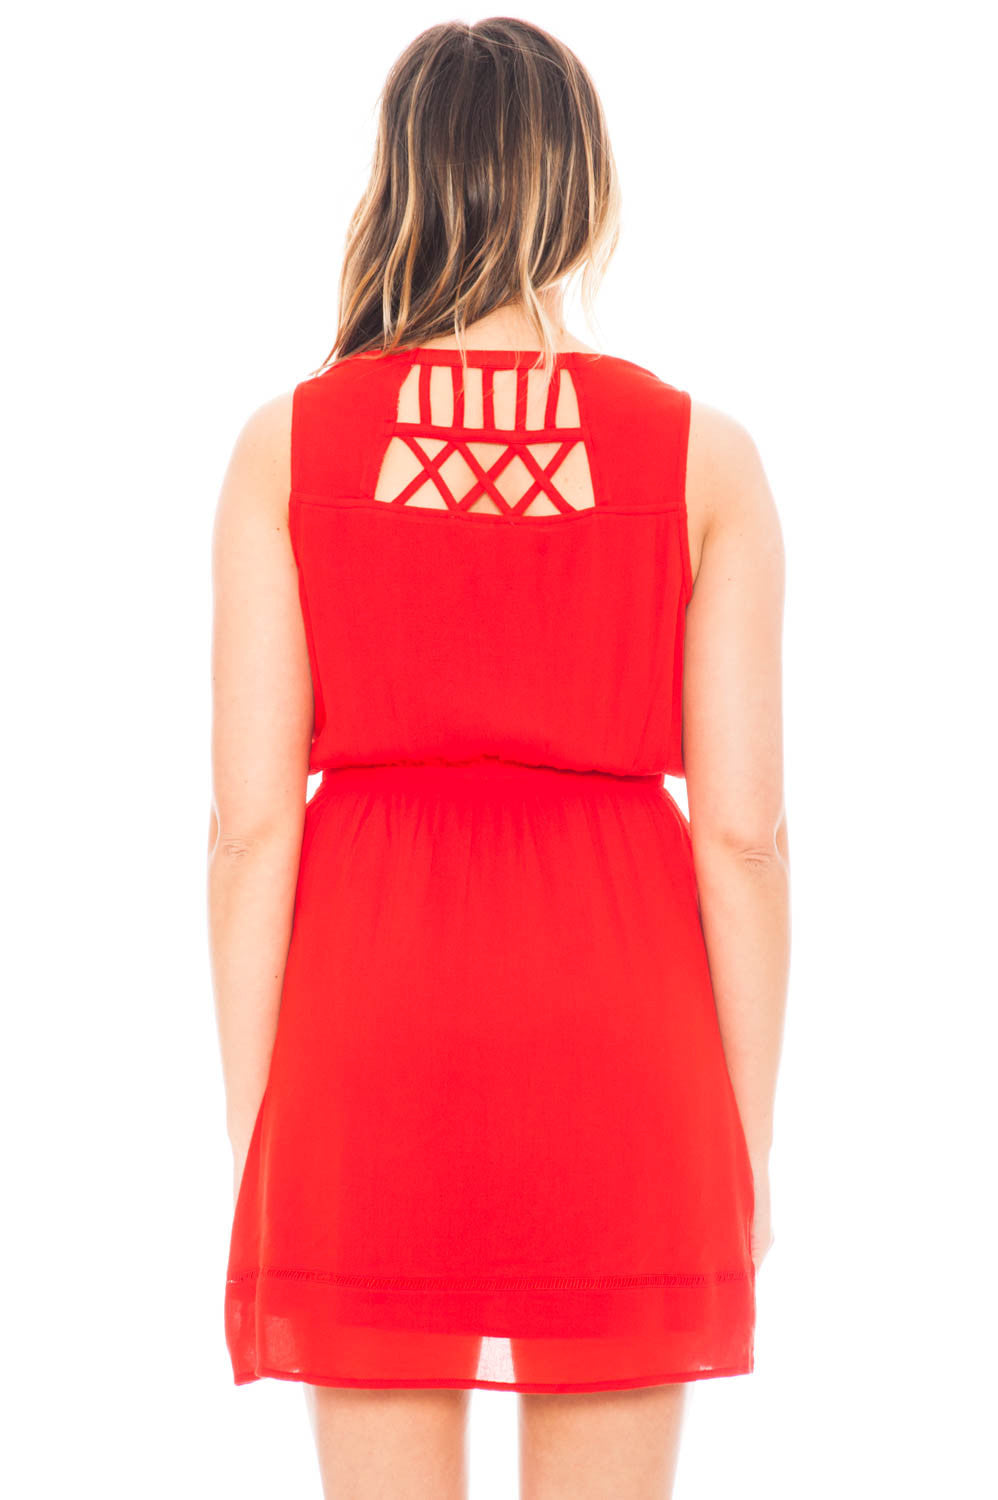 Dress - Lattice Detail V-neck Dress with Strappy Back Detail